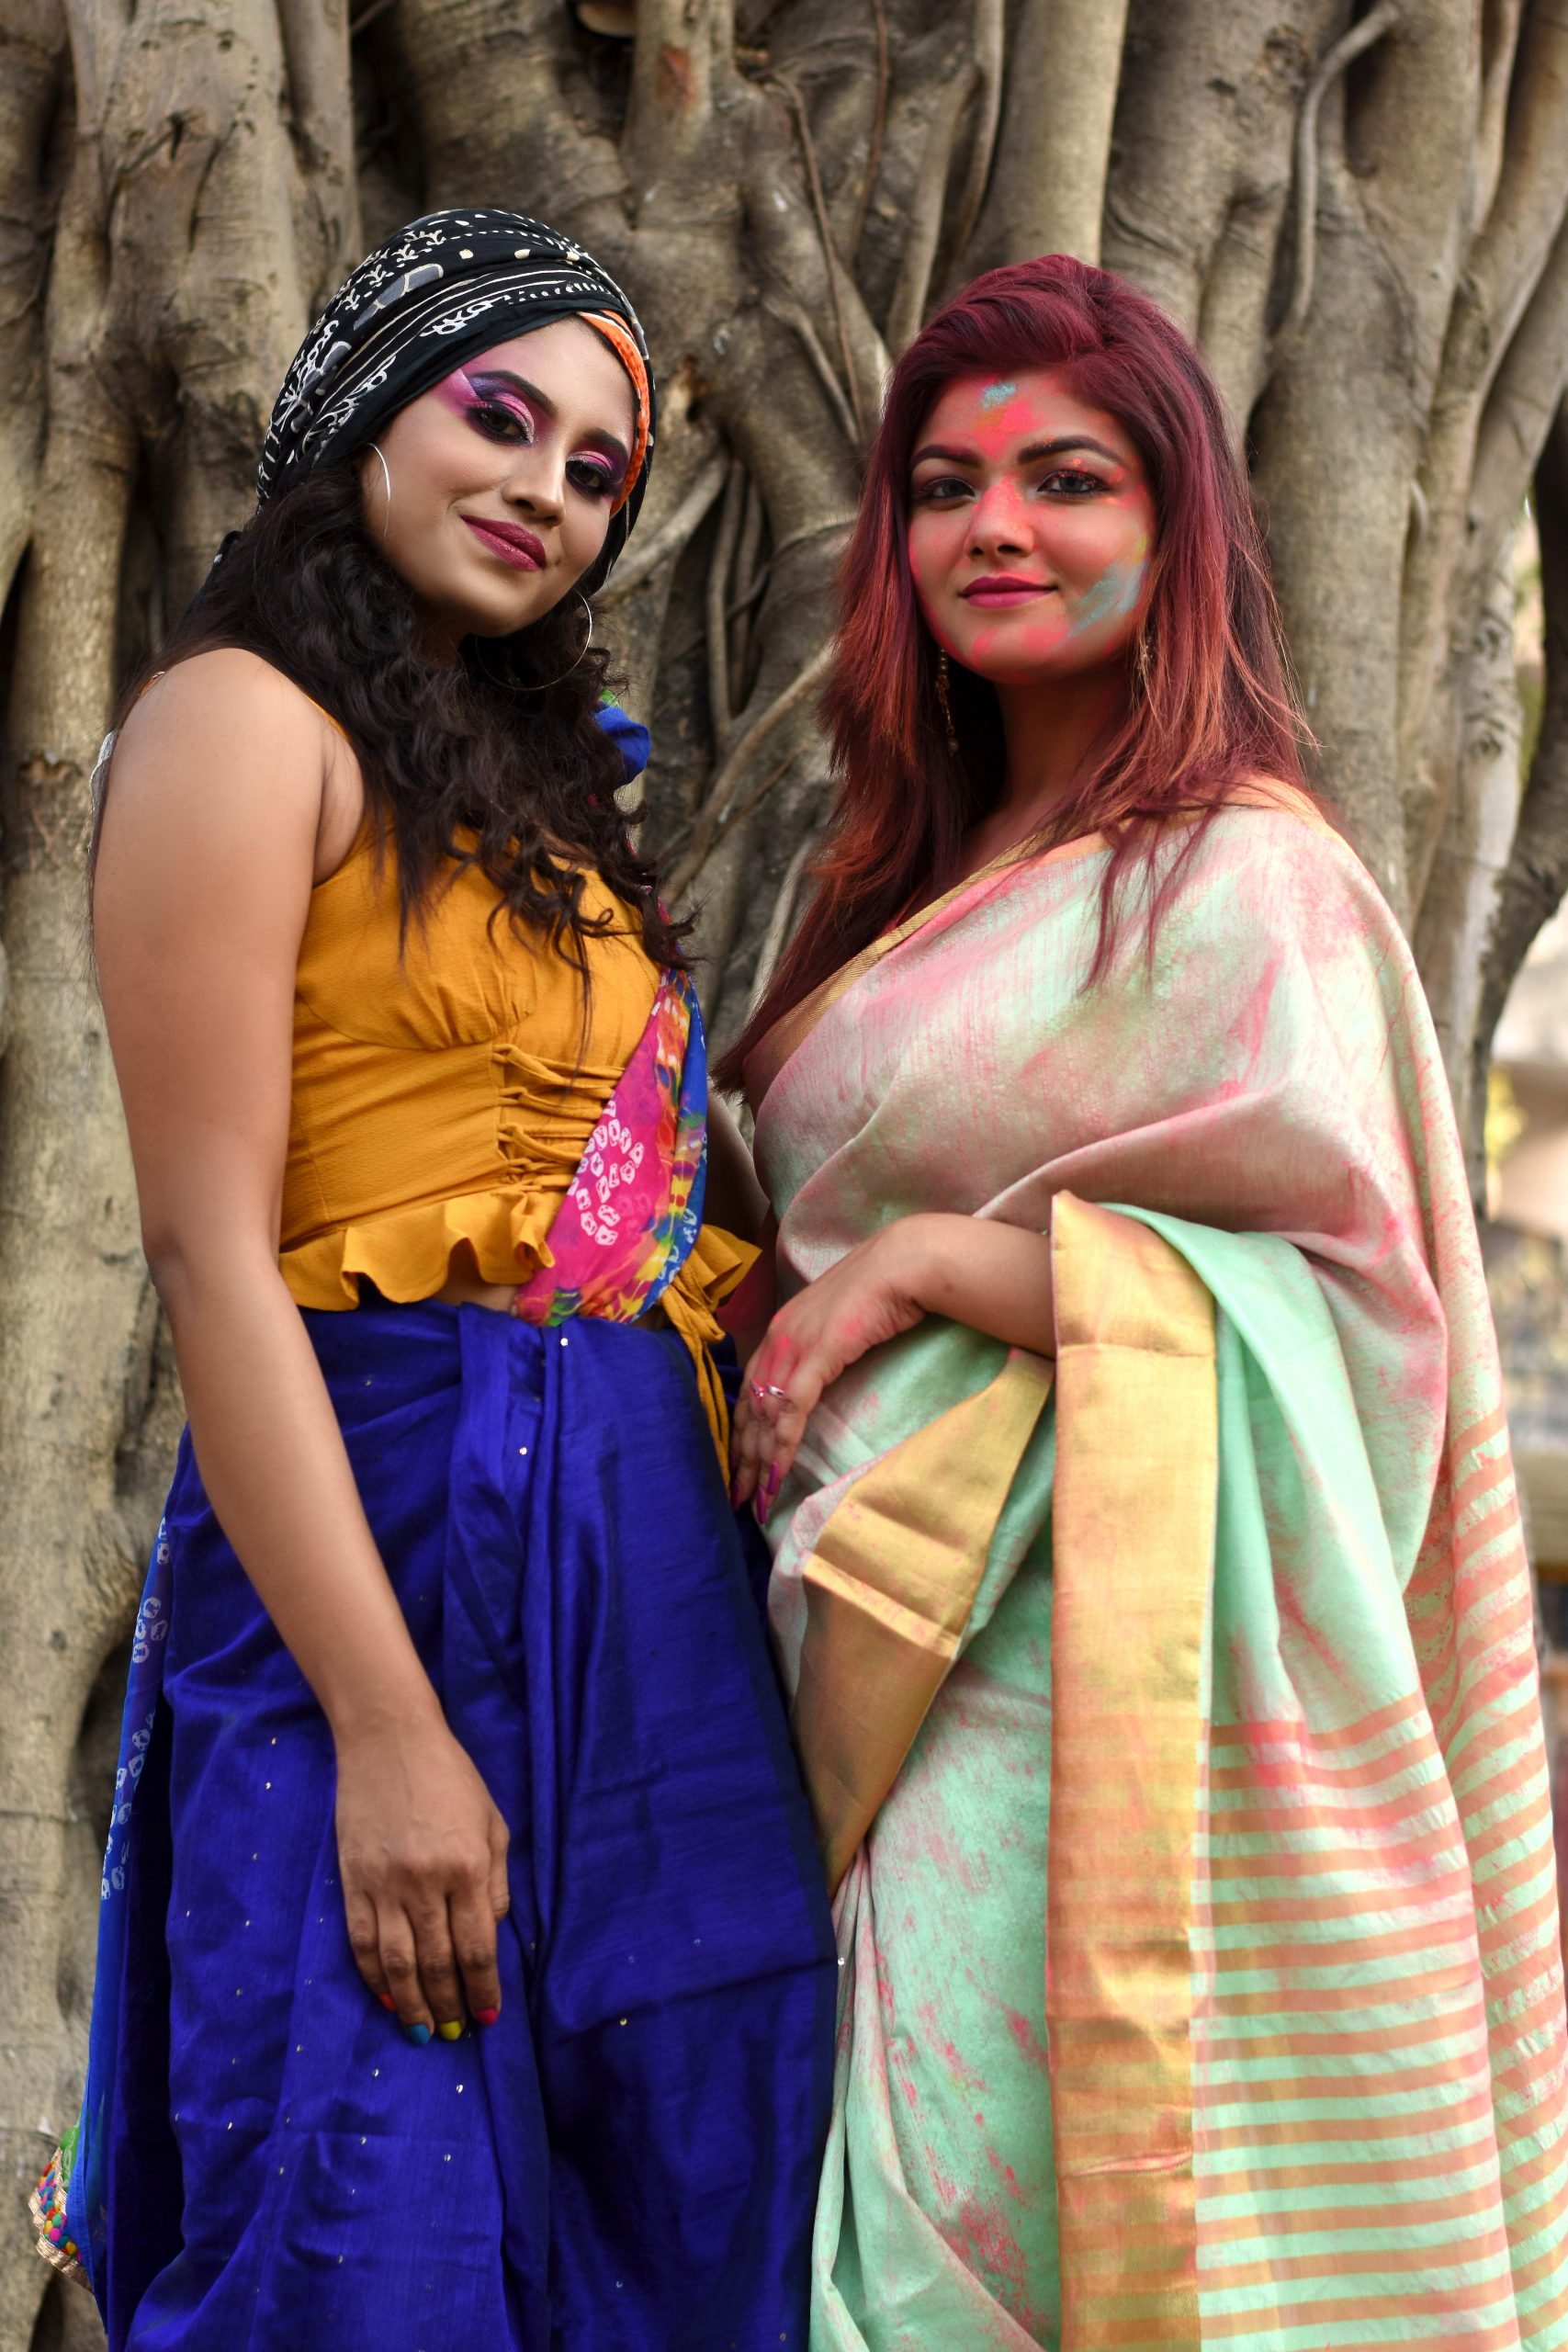 beautiful girls with Holi colors on their faces